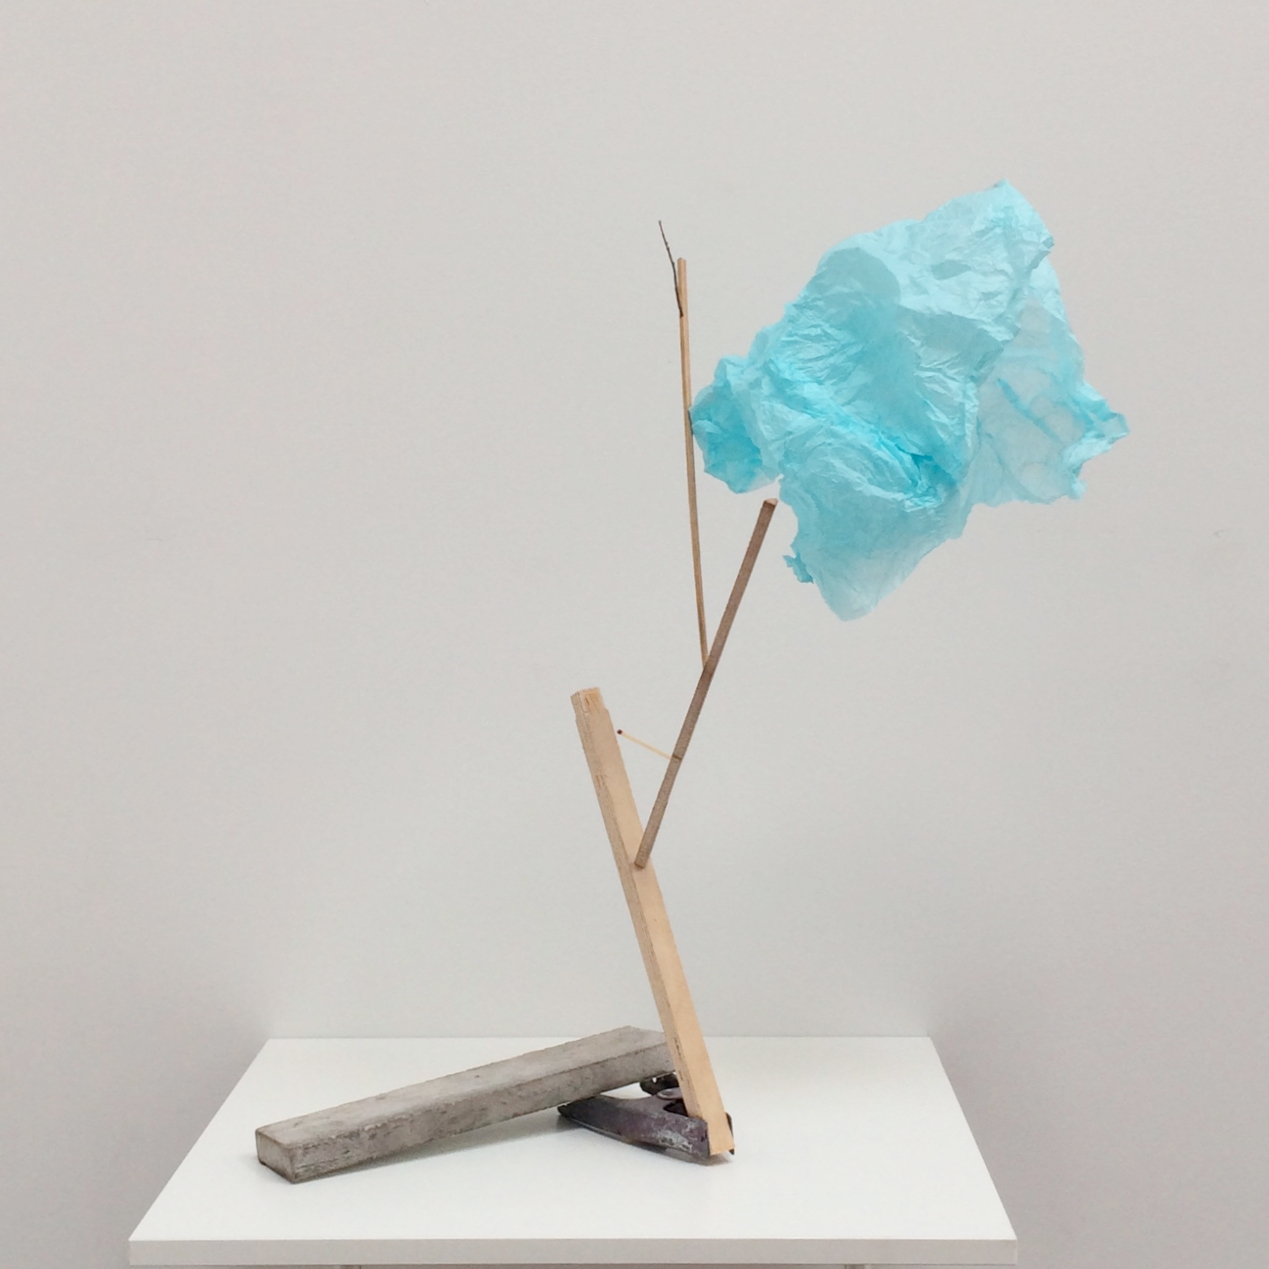 acot  2017 twigs, mixed media wood products, wrapping tissue, spring clamp, marble 22.25 x 24 x 18 inches